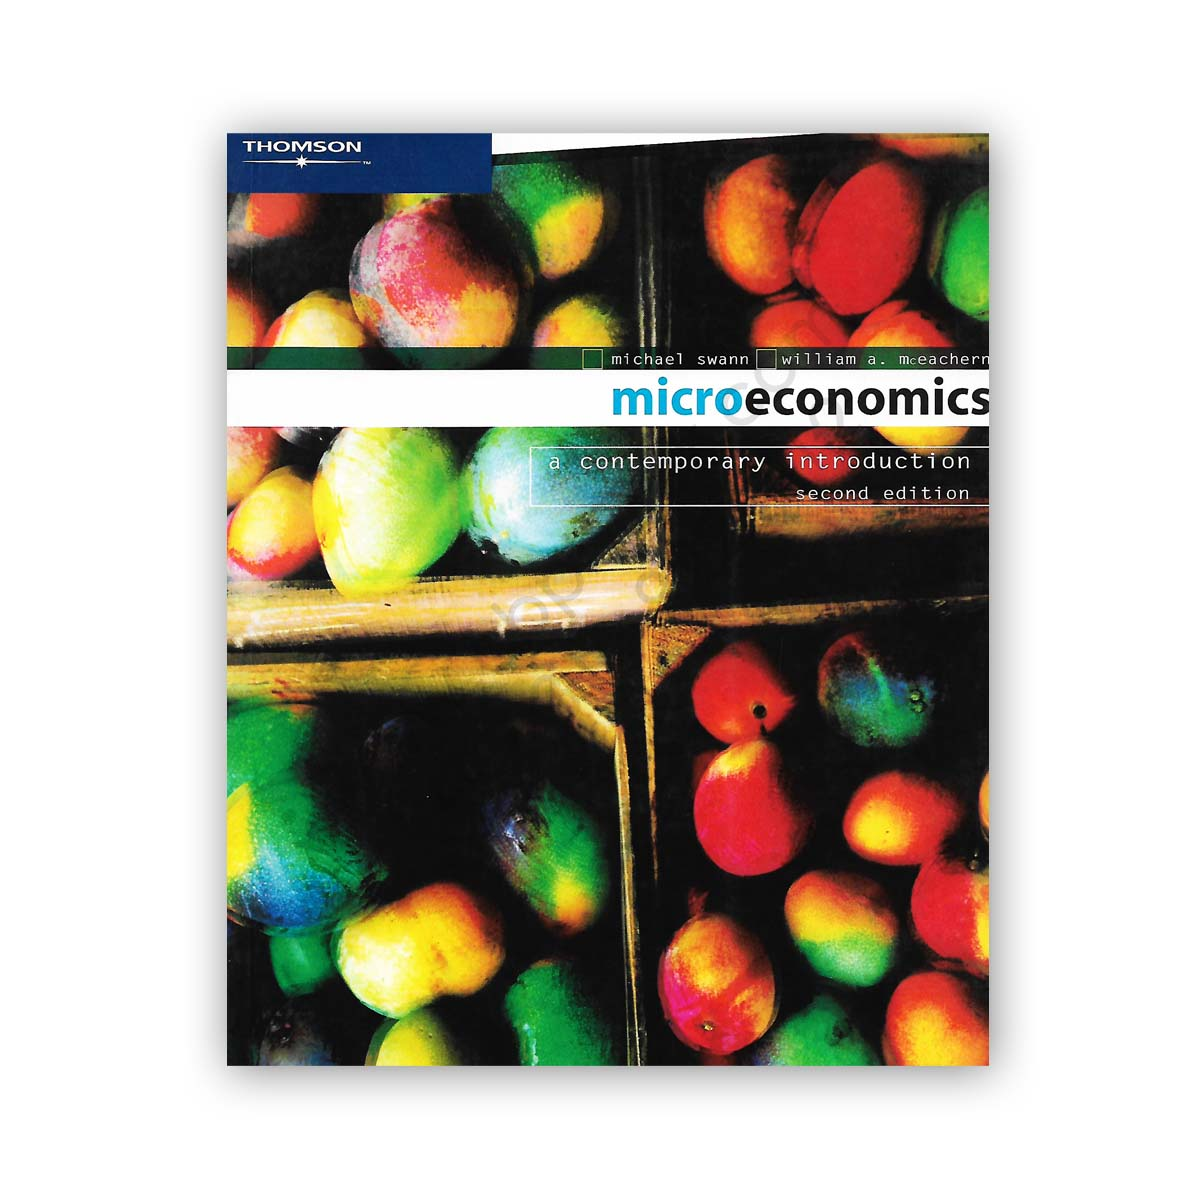 microeconomics a contemporary introduction michael swann second edition - thomson